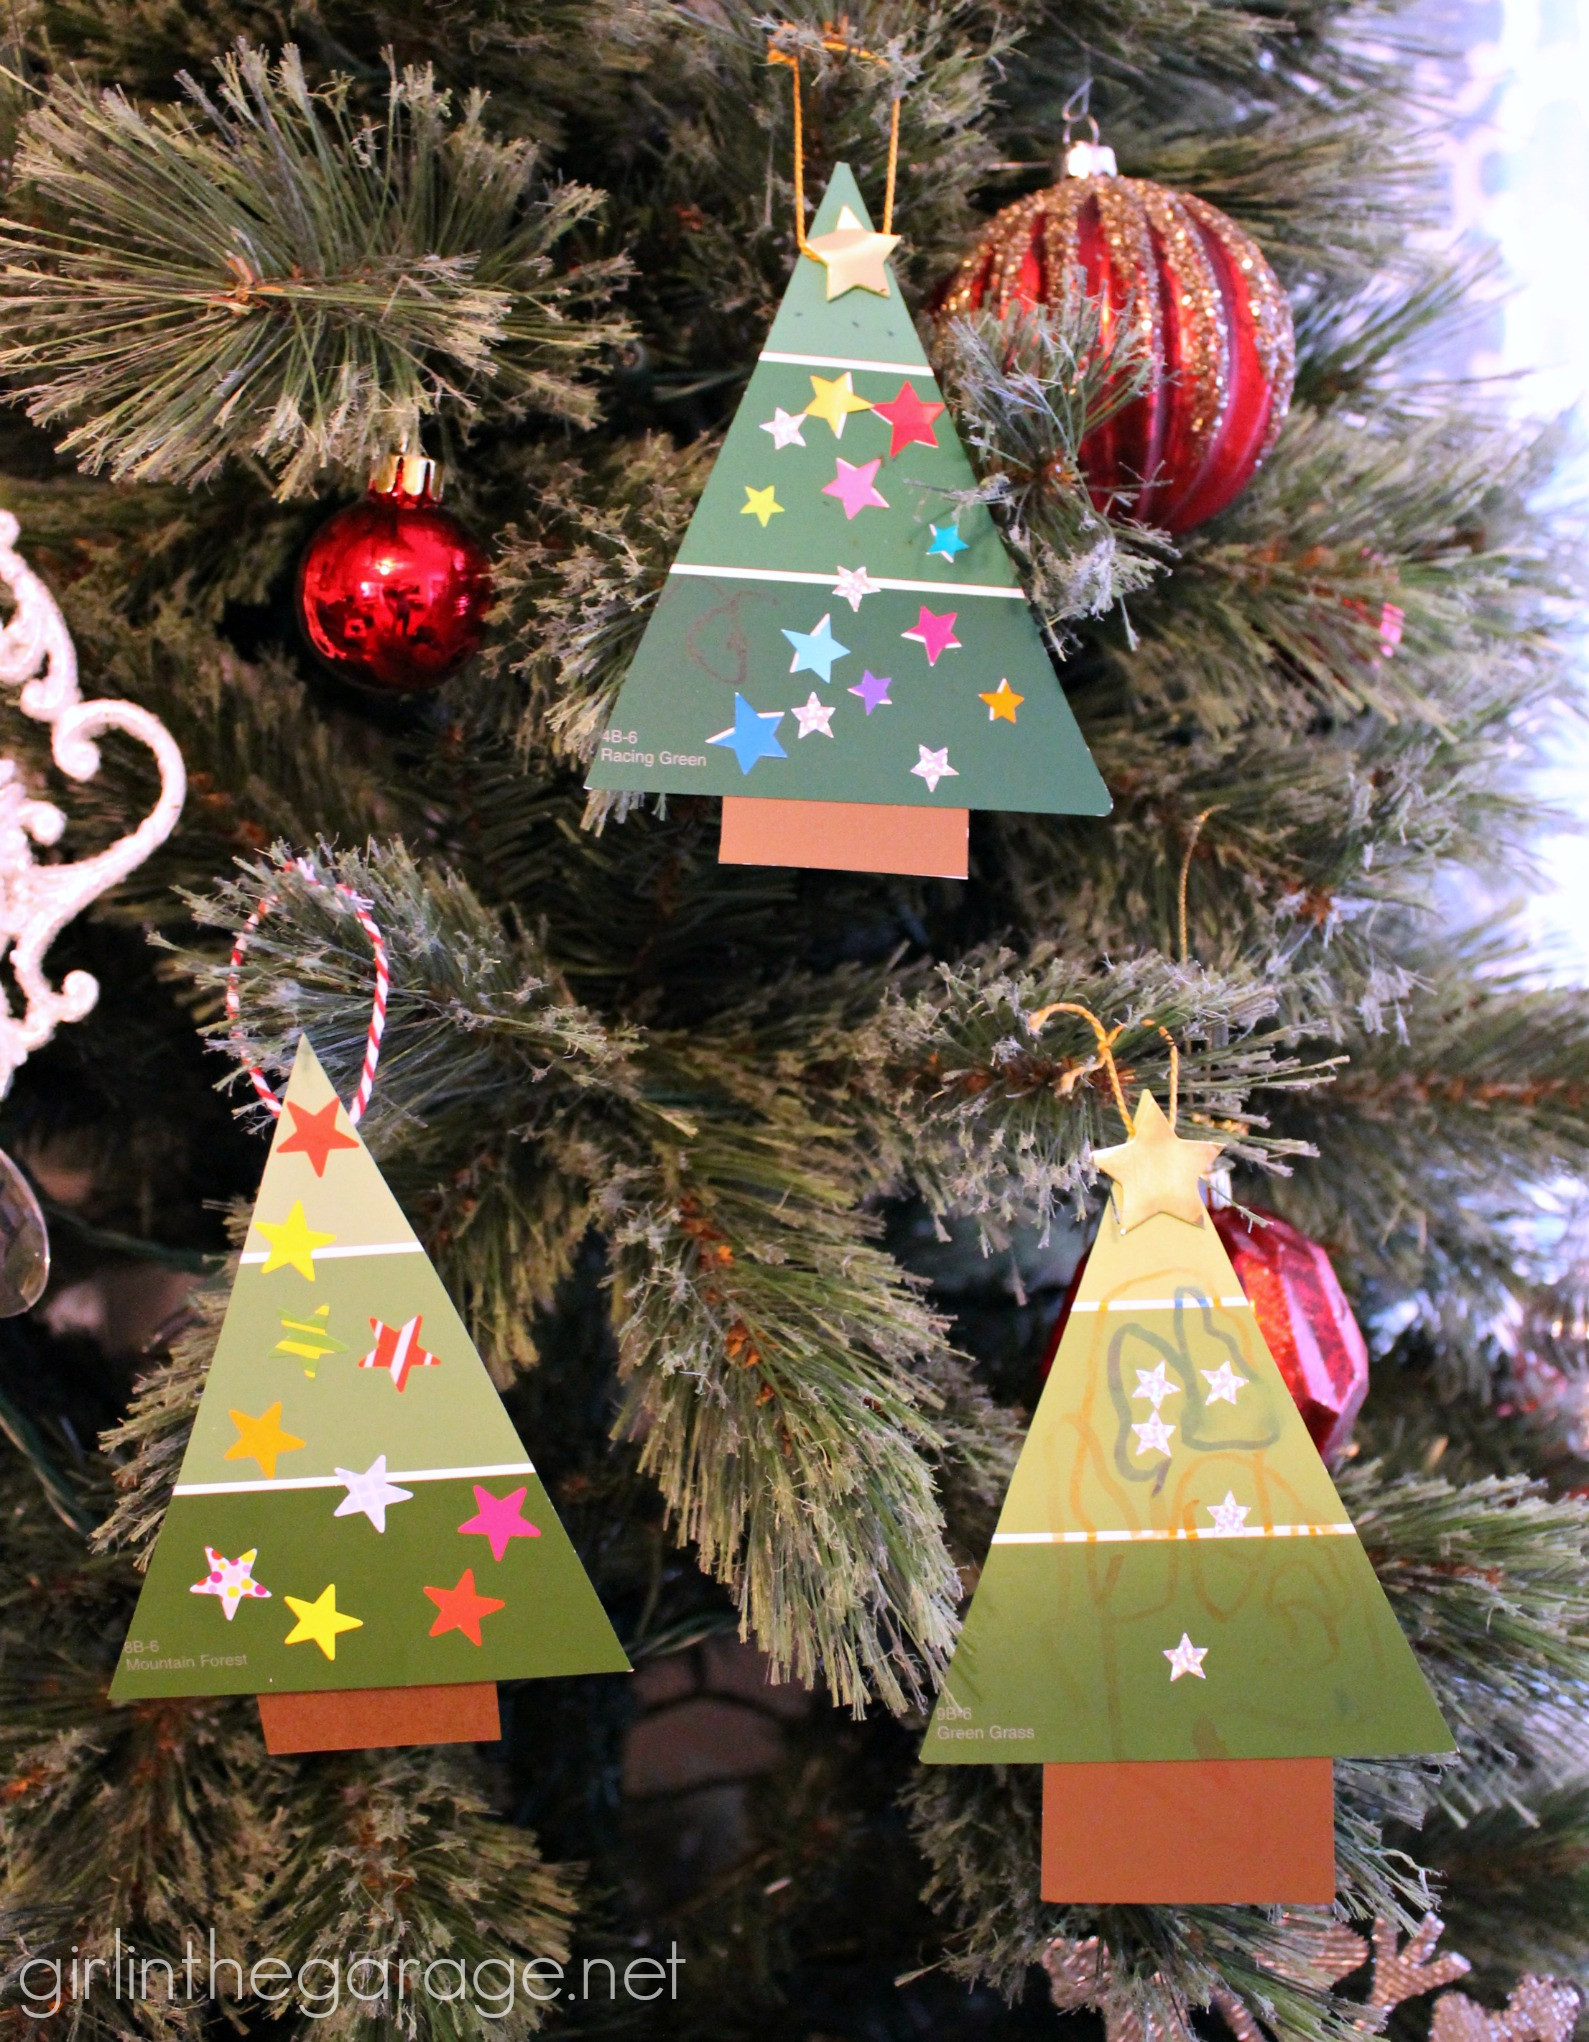 Christmas ornaments to Make New Diy Christmas Tree ornaments to Make with Your Kids Of Delightful 43 Images Christmas ornaments to Make